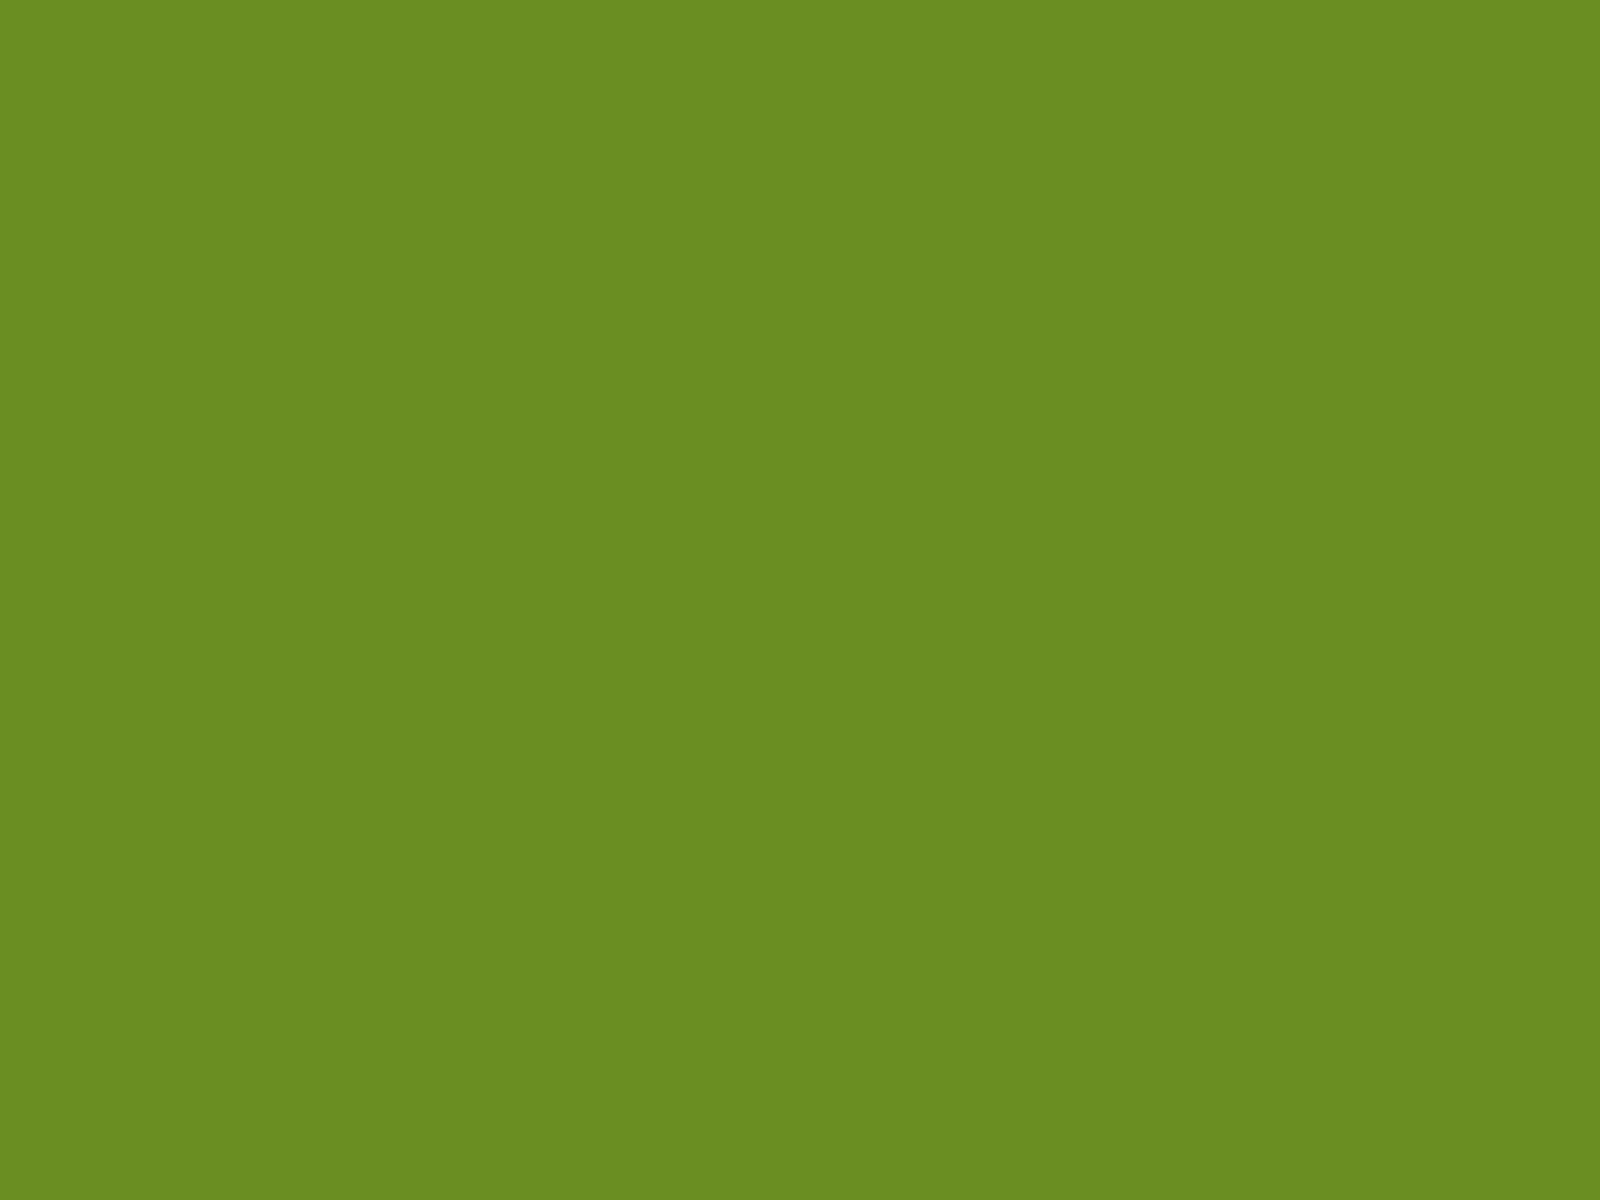 1600x1200 Olive Drab Number Three Solid Color Background